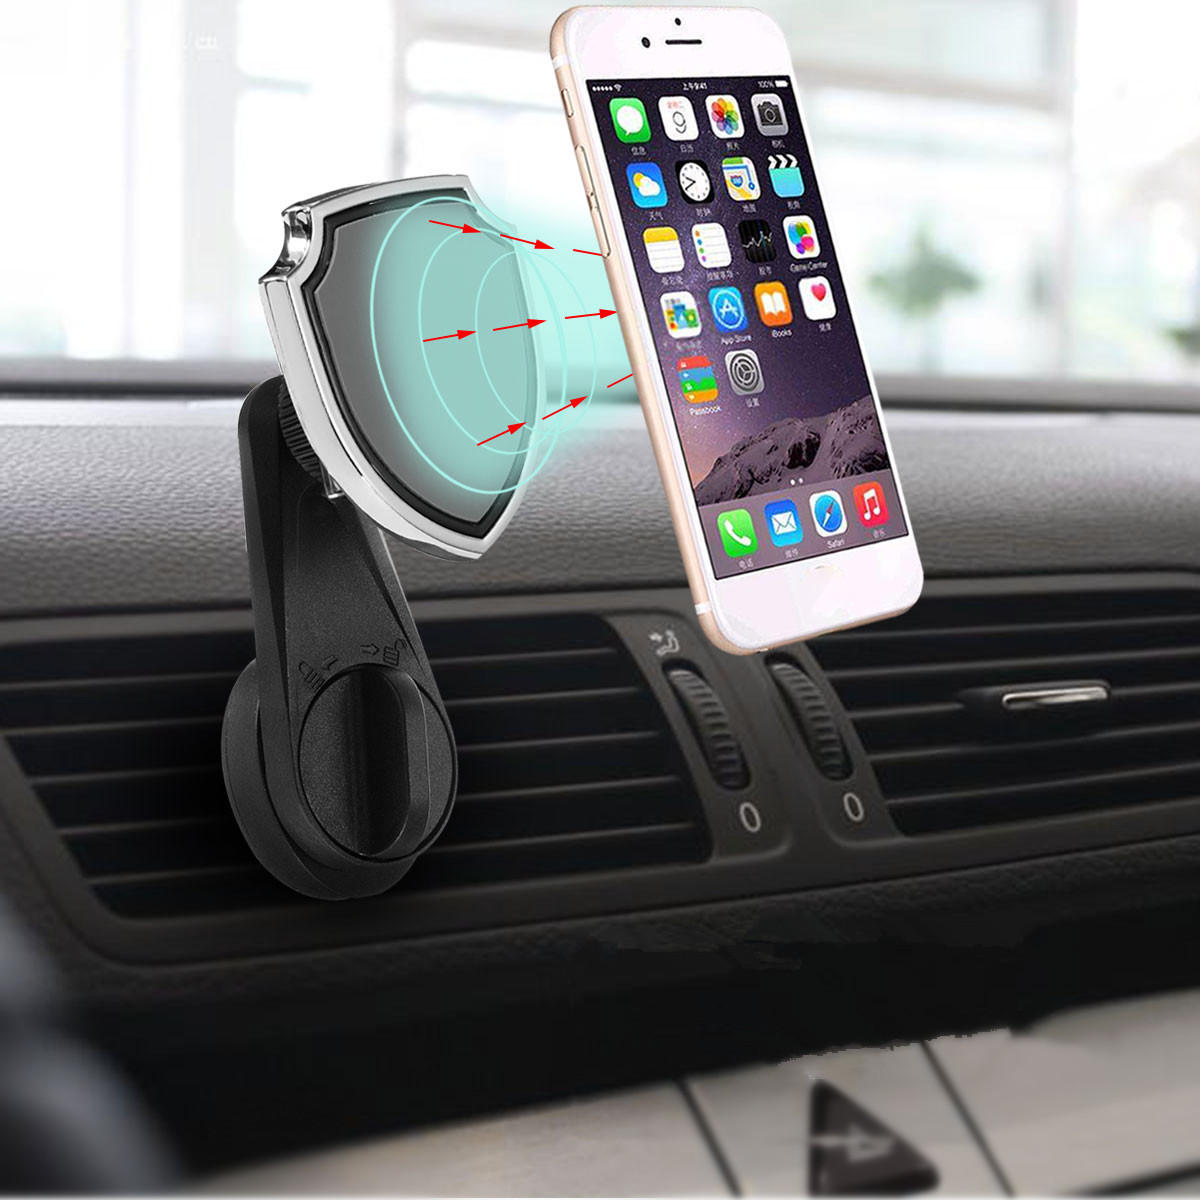 2fee1c617f3e2f Universal Car Air Vent Magnetic Mount Outlet Holder Phone Stand for iPhone  Samsung Xiaomi Huawei COD